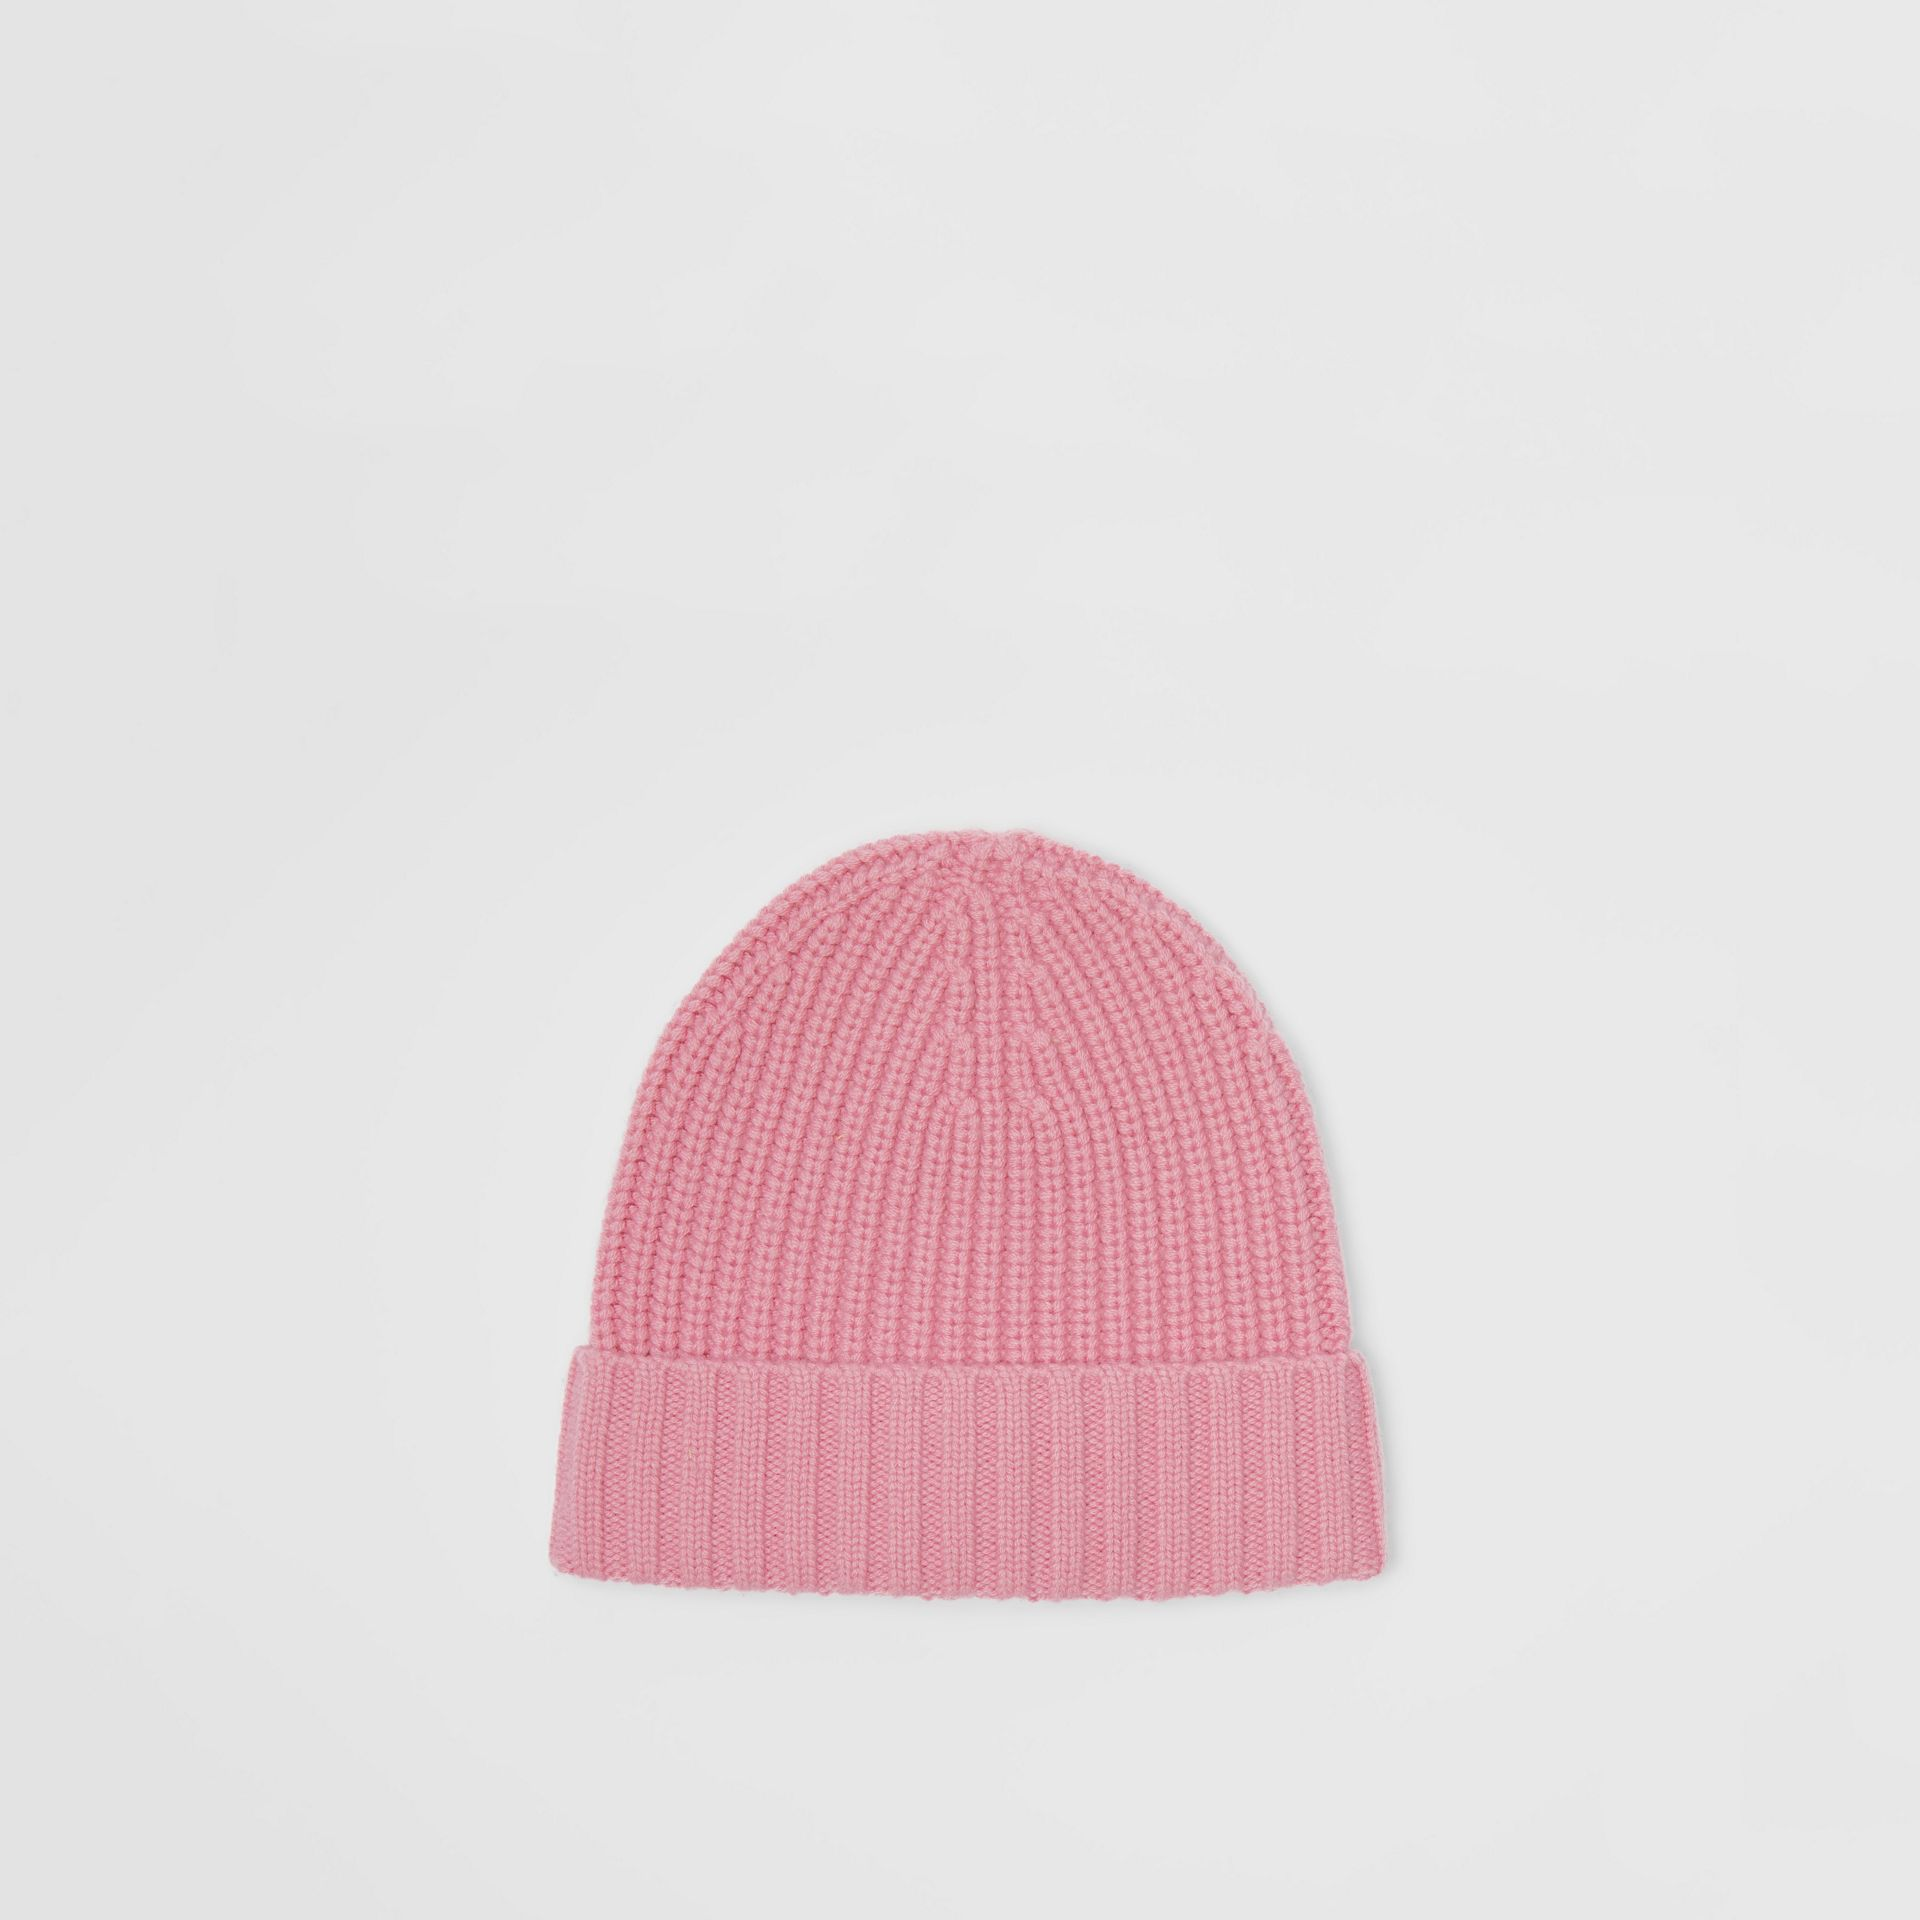 Embroidered Crest Rib Knit Wool Cashmere Beanie in Rose Pink | Burberry - gallery image 4